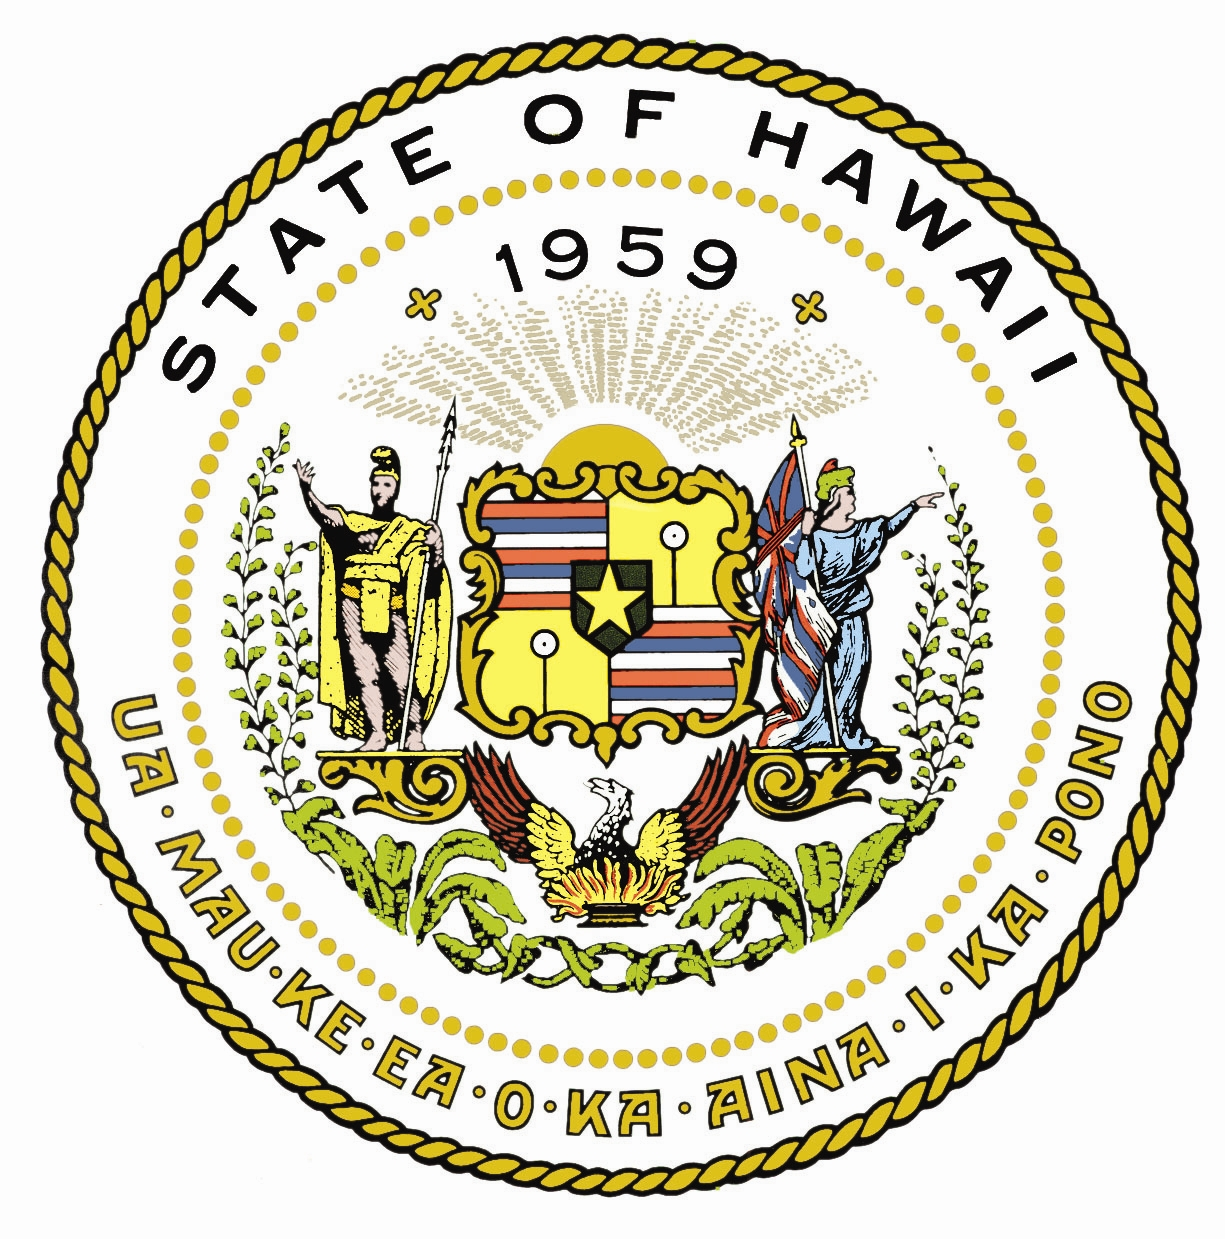 Hire Abilities Hawai Ipartners Hire Abilities Hawai I